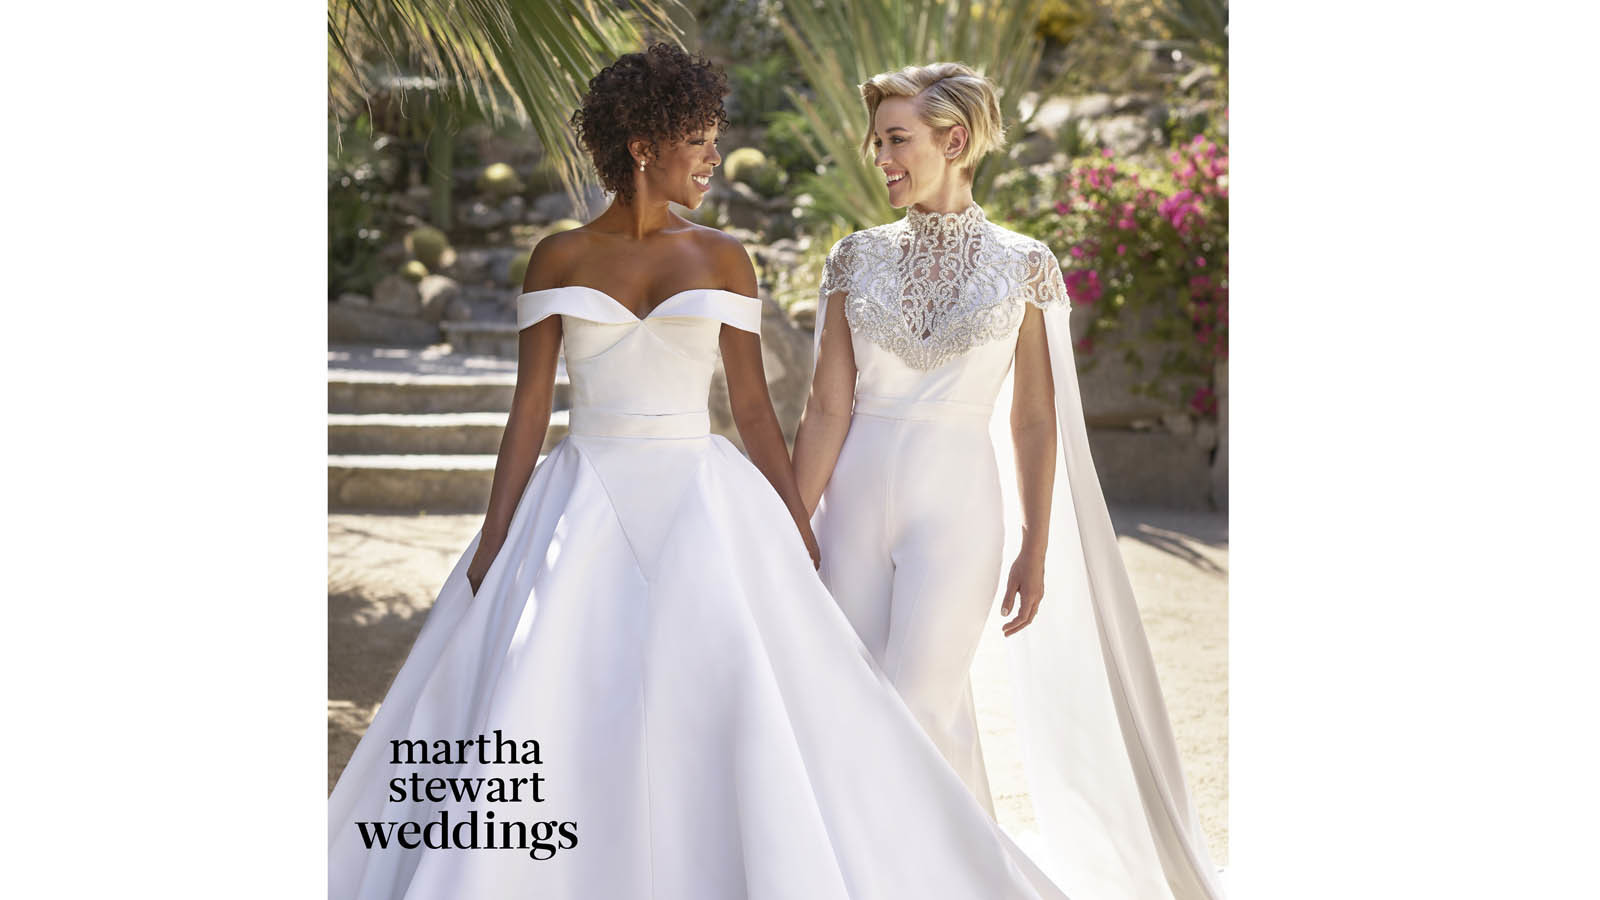 Martha Stewart Weddings: Samira Wiley Marries 'Orange Is The New Black' Writer